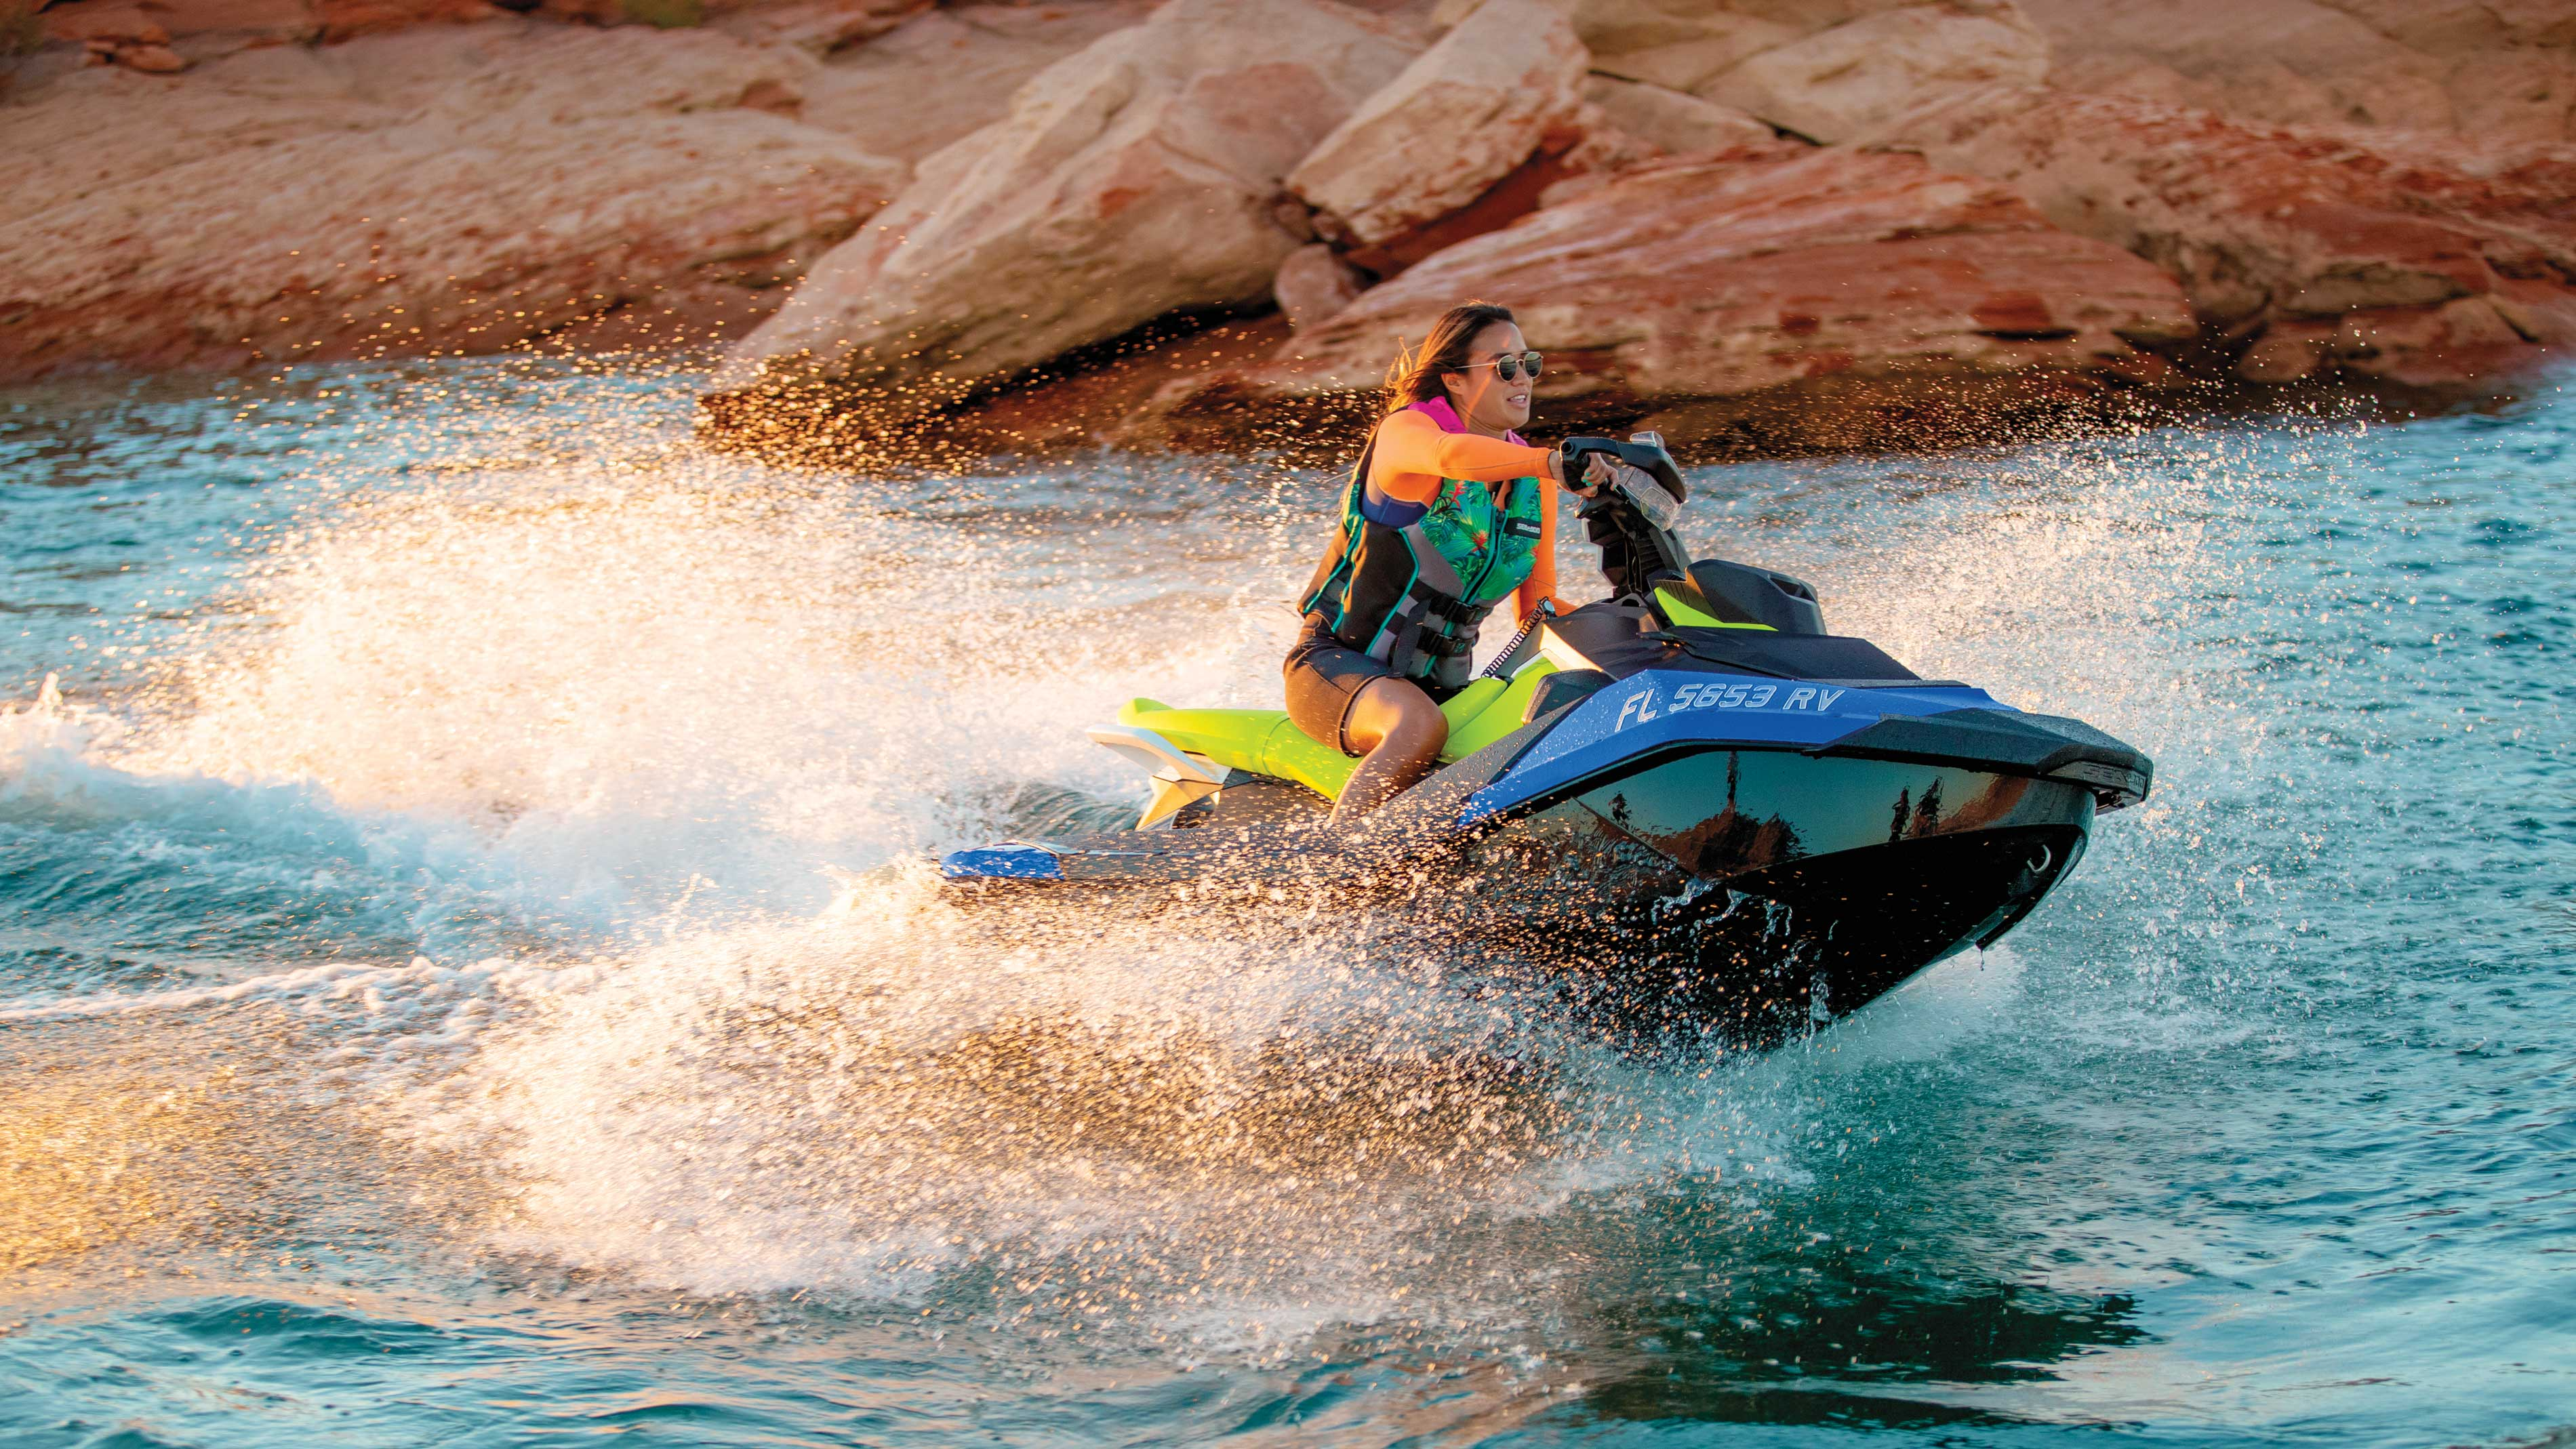 Women on a Sea-Doo SPARK